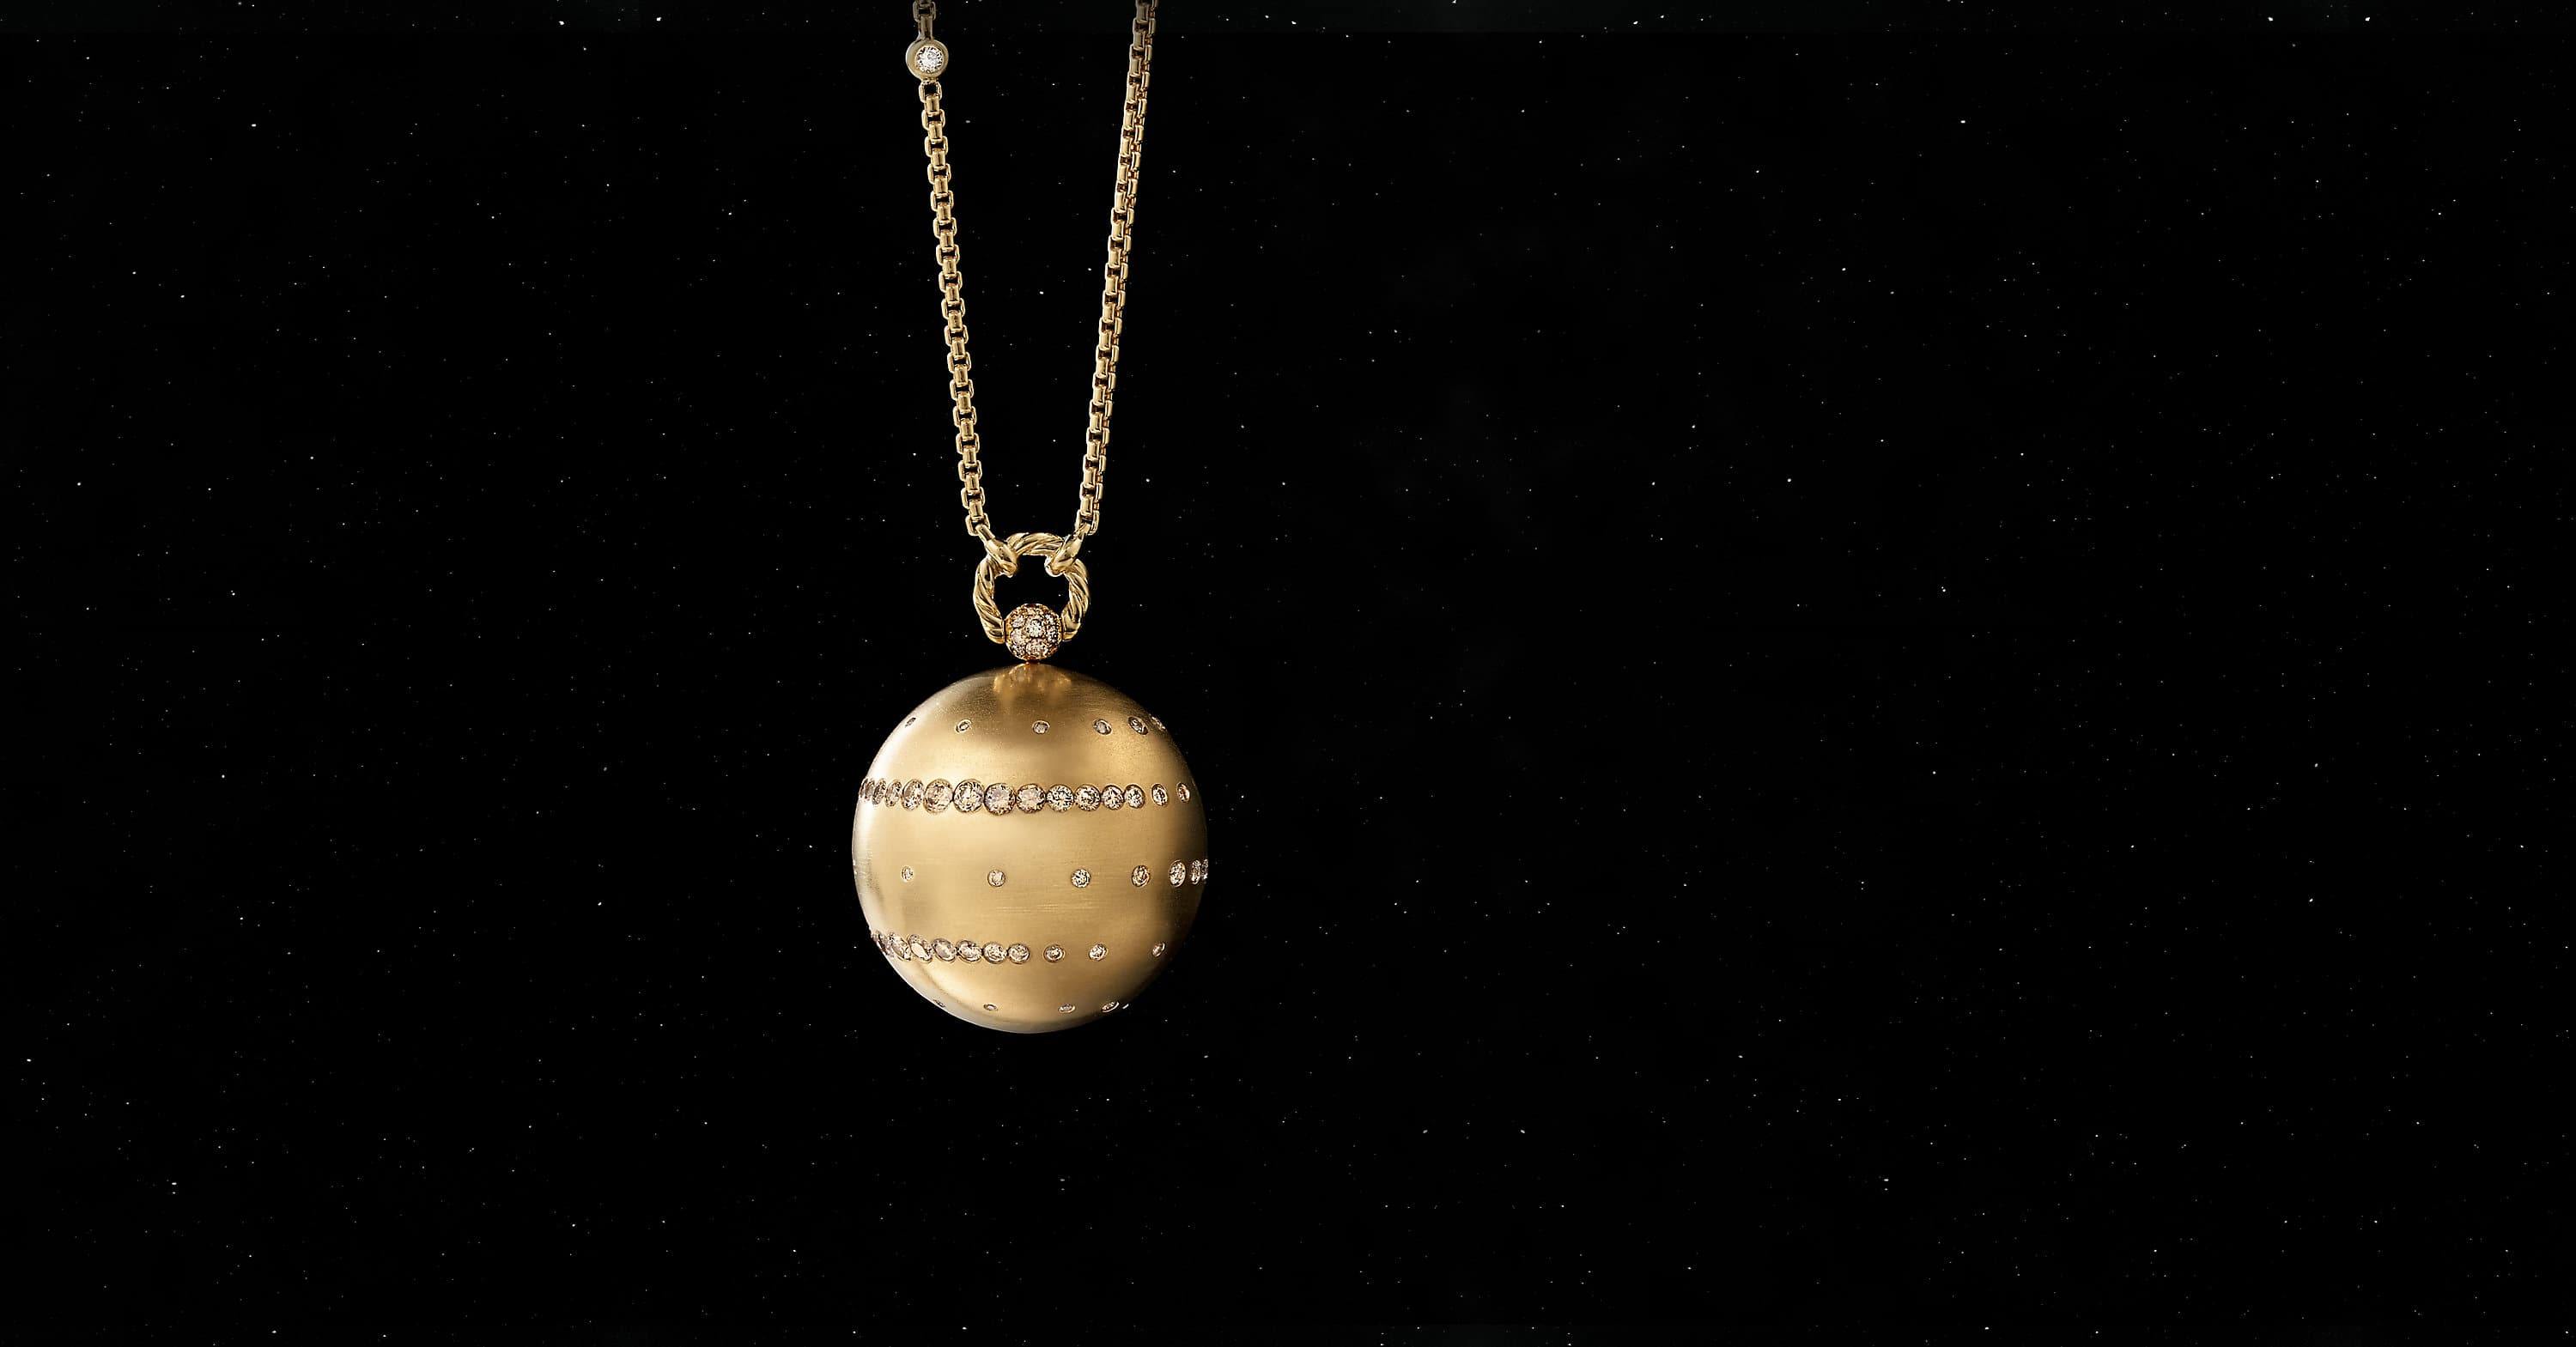 Solari Jupiter Pendant Necklace in 18K Yellow Gold with Pavé